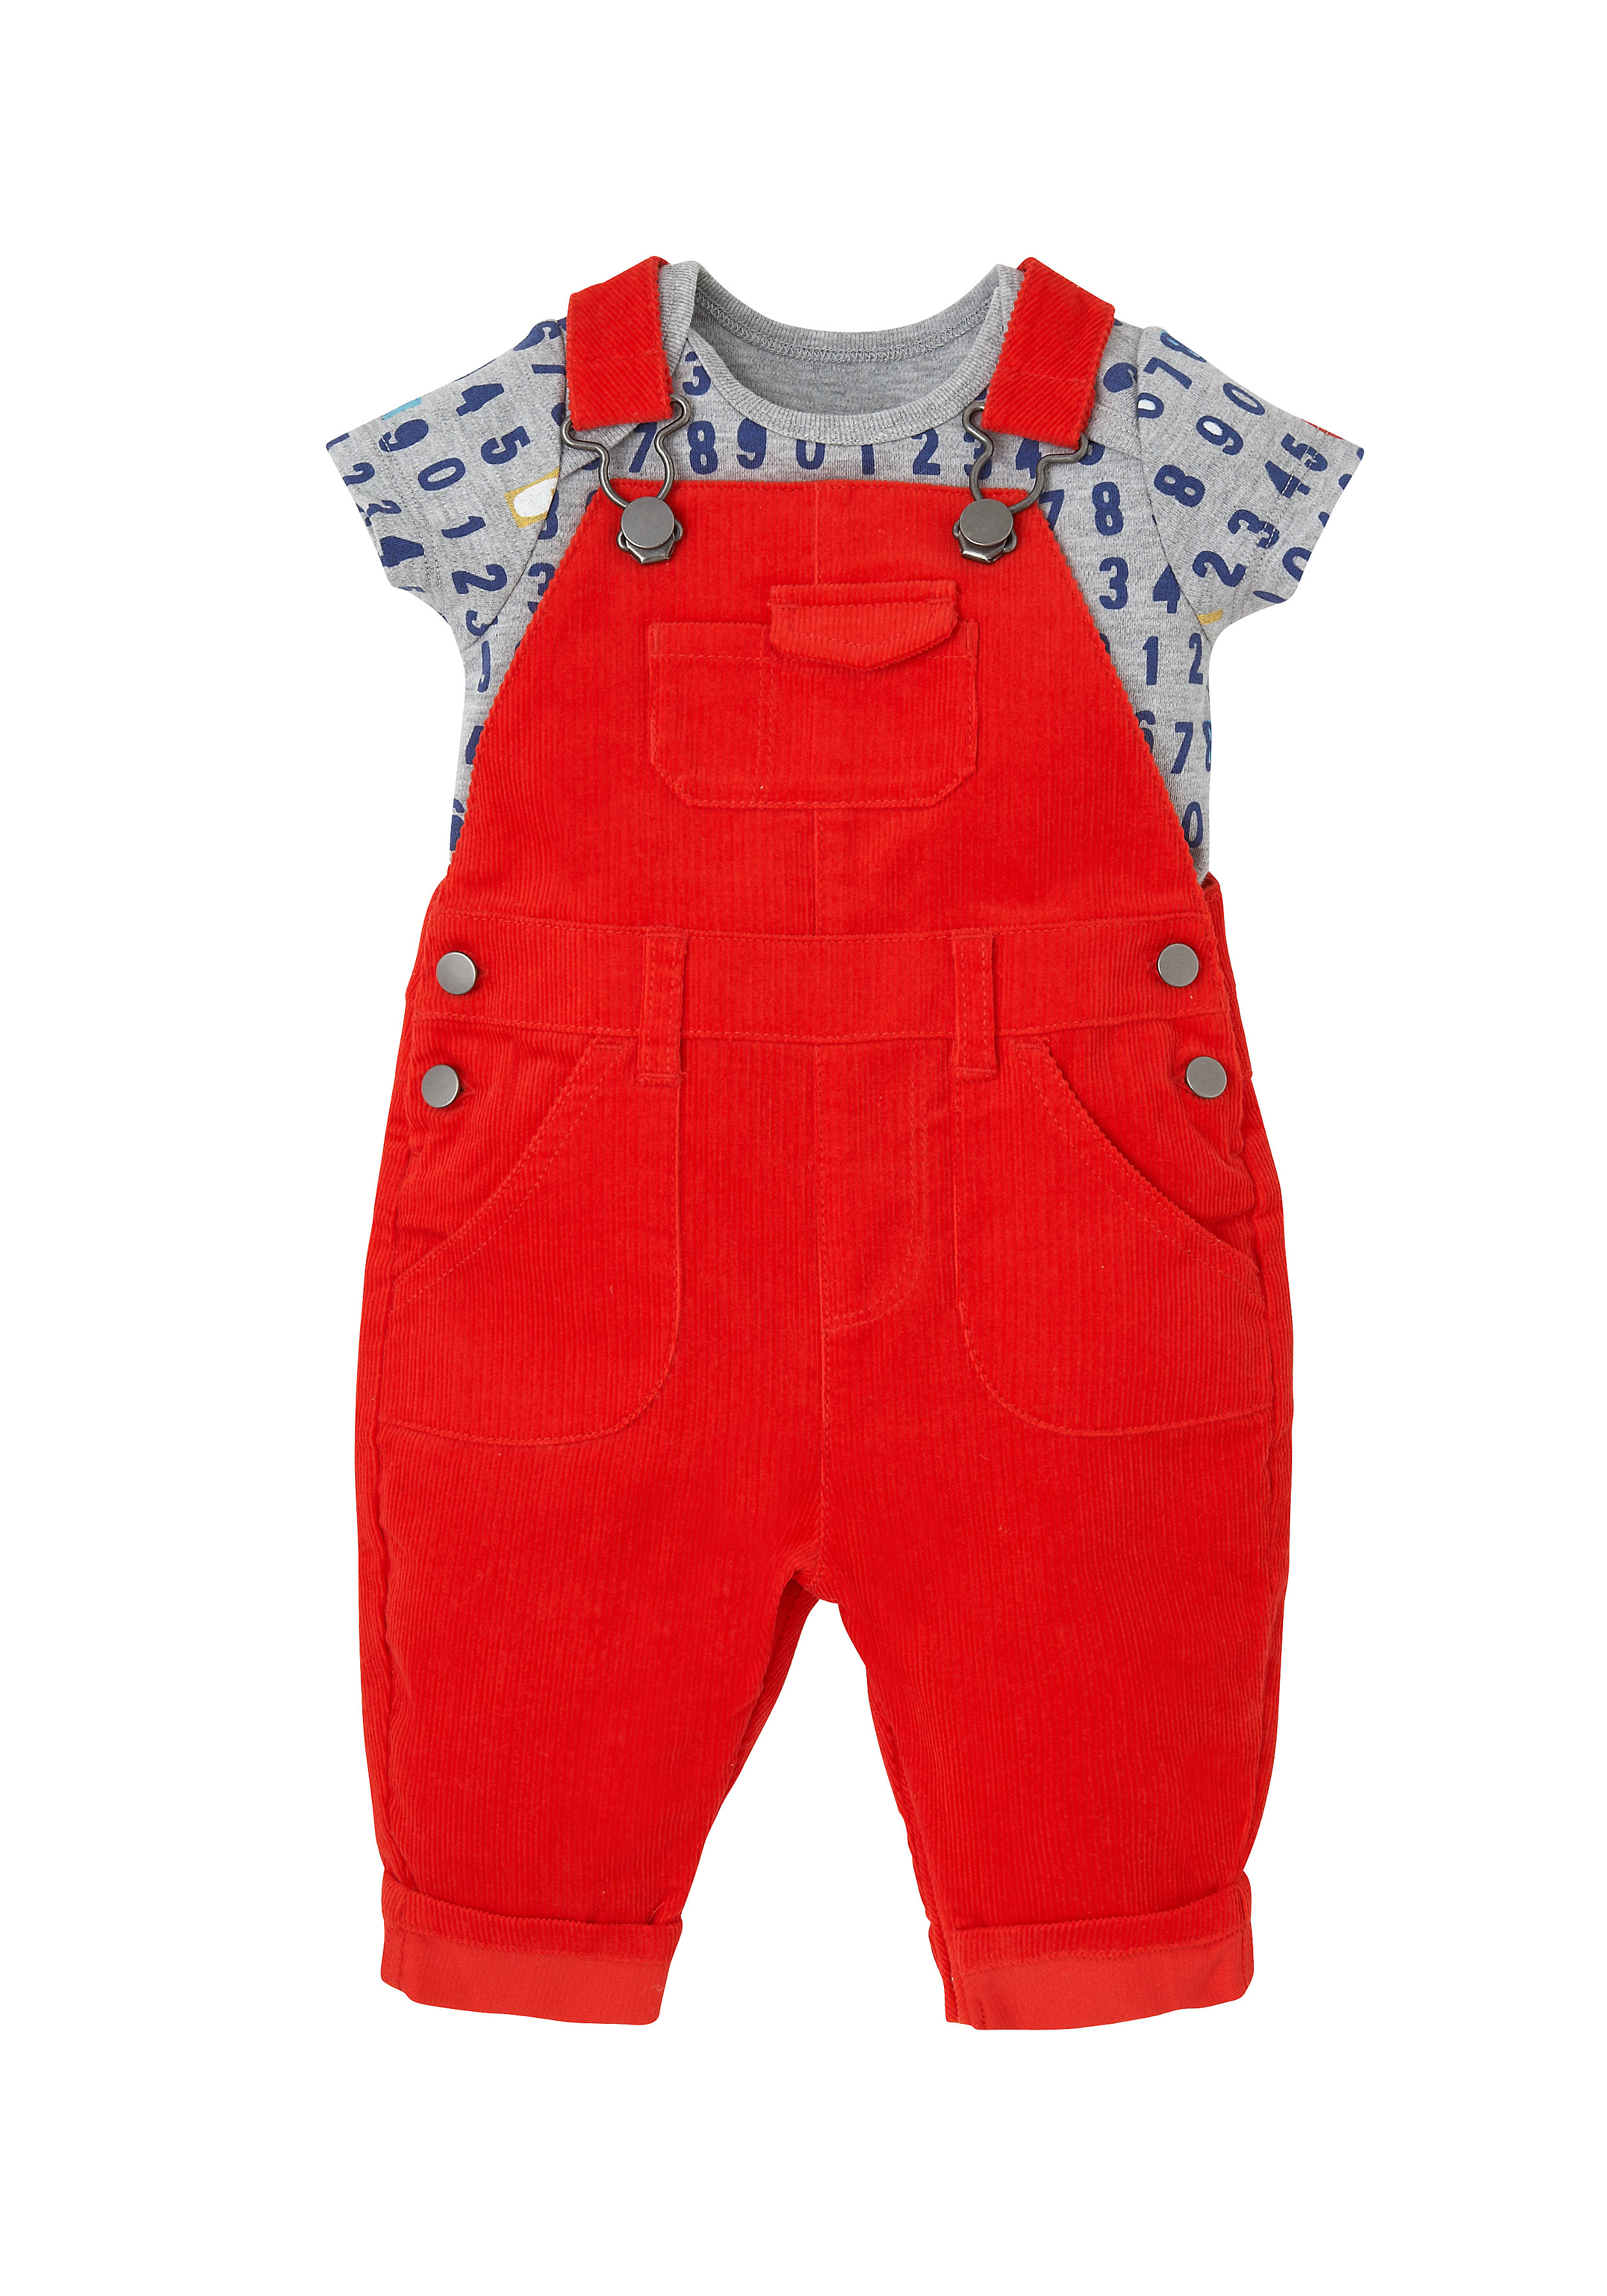 Mothercare | Boys Half Sleeves Cord Dungaree Set Number Print - Red